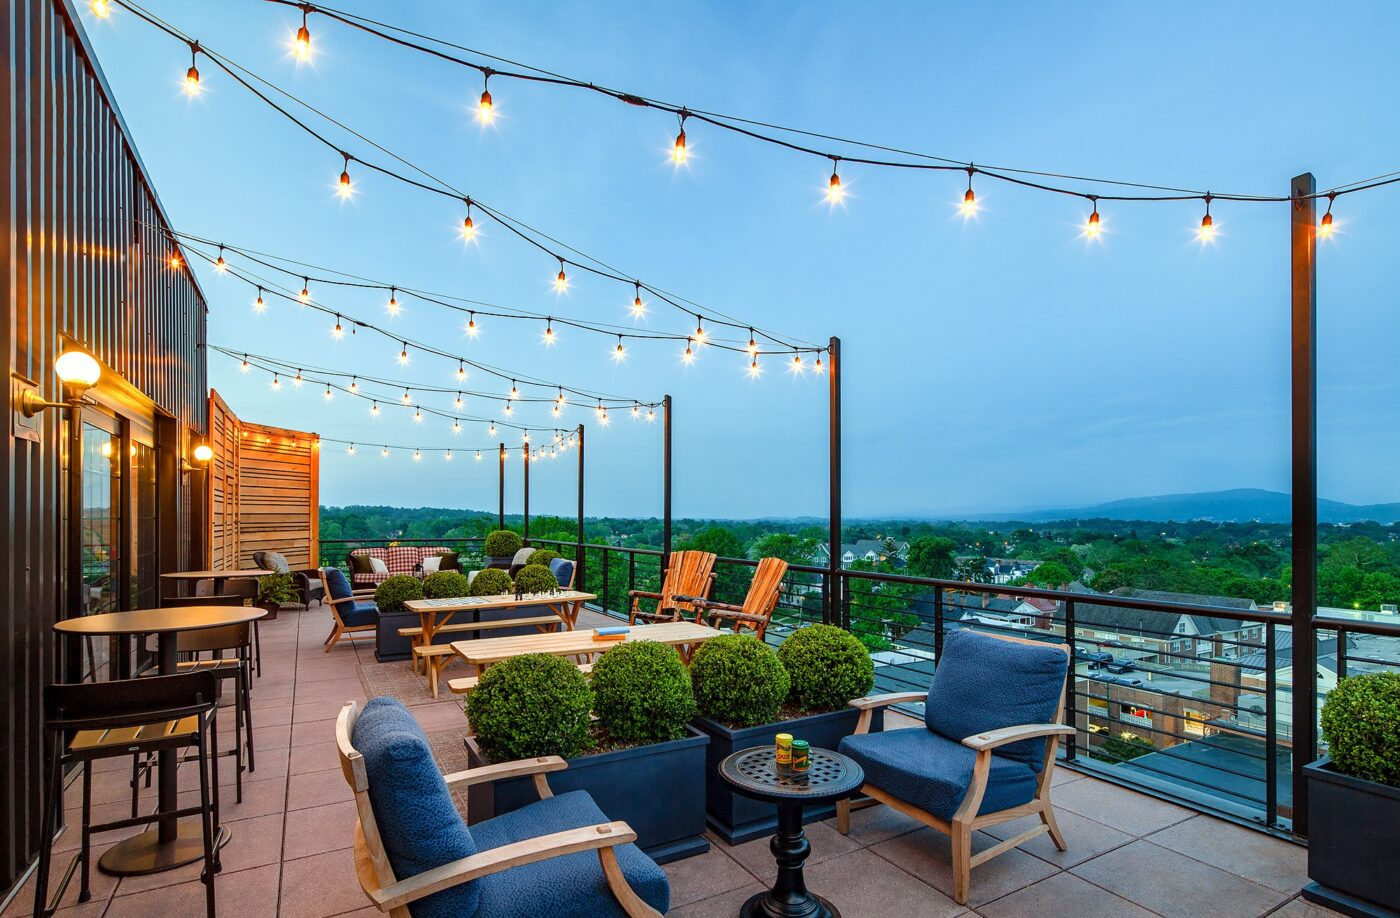 Rooftop Deck of The Graduate Hotel